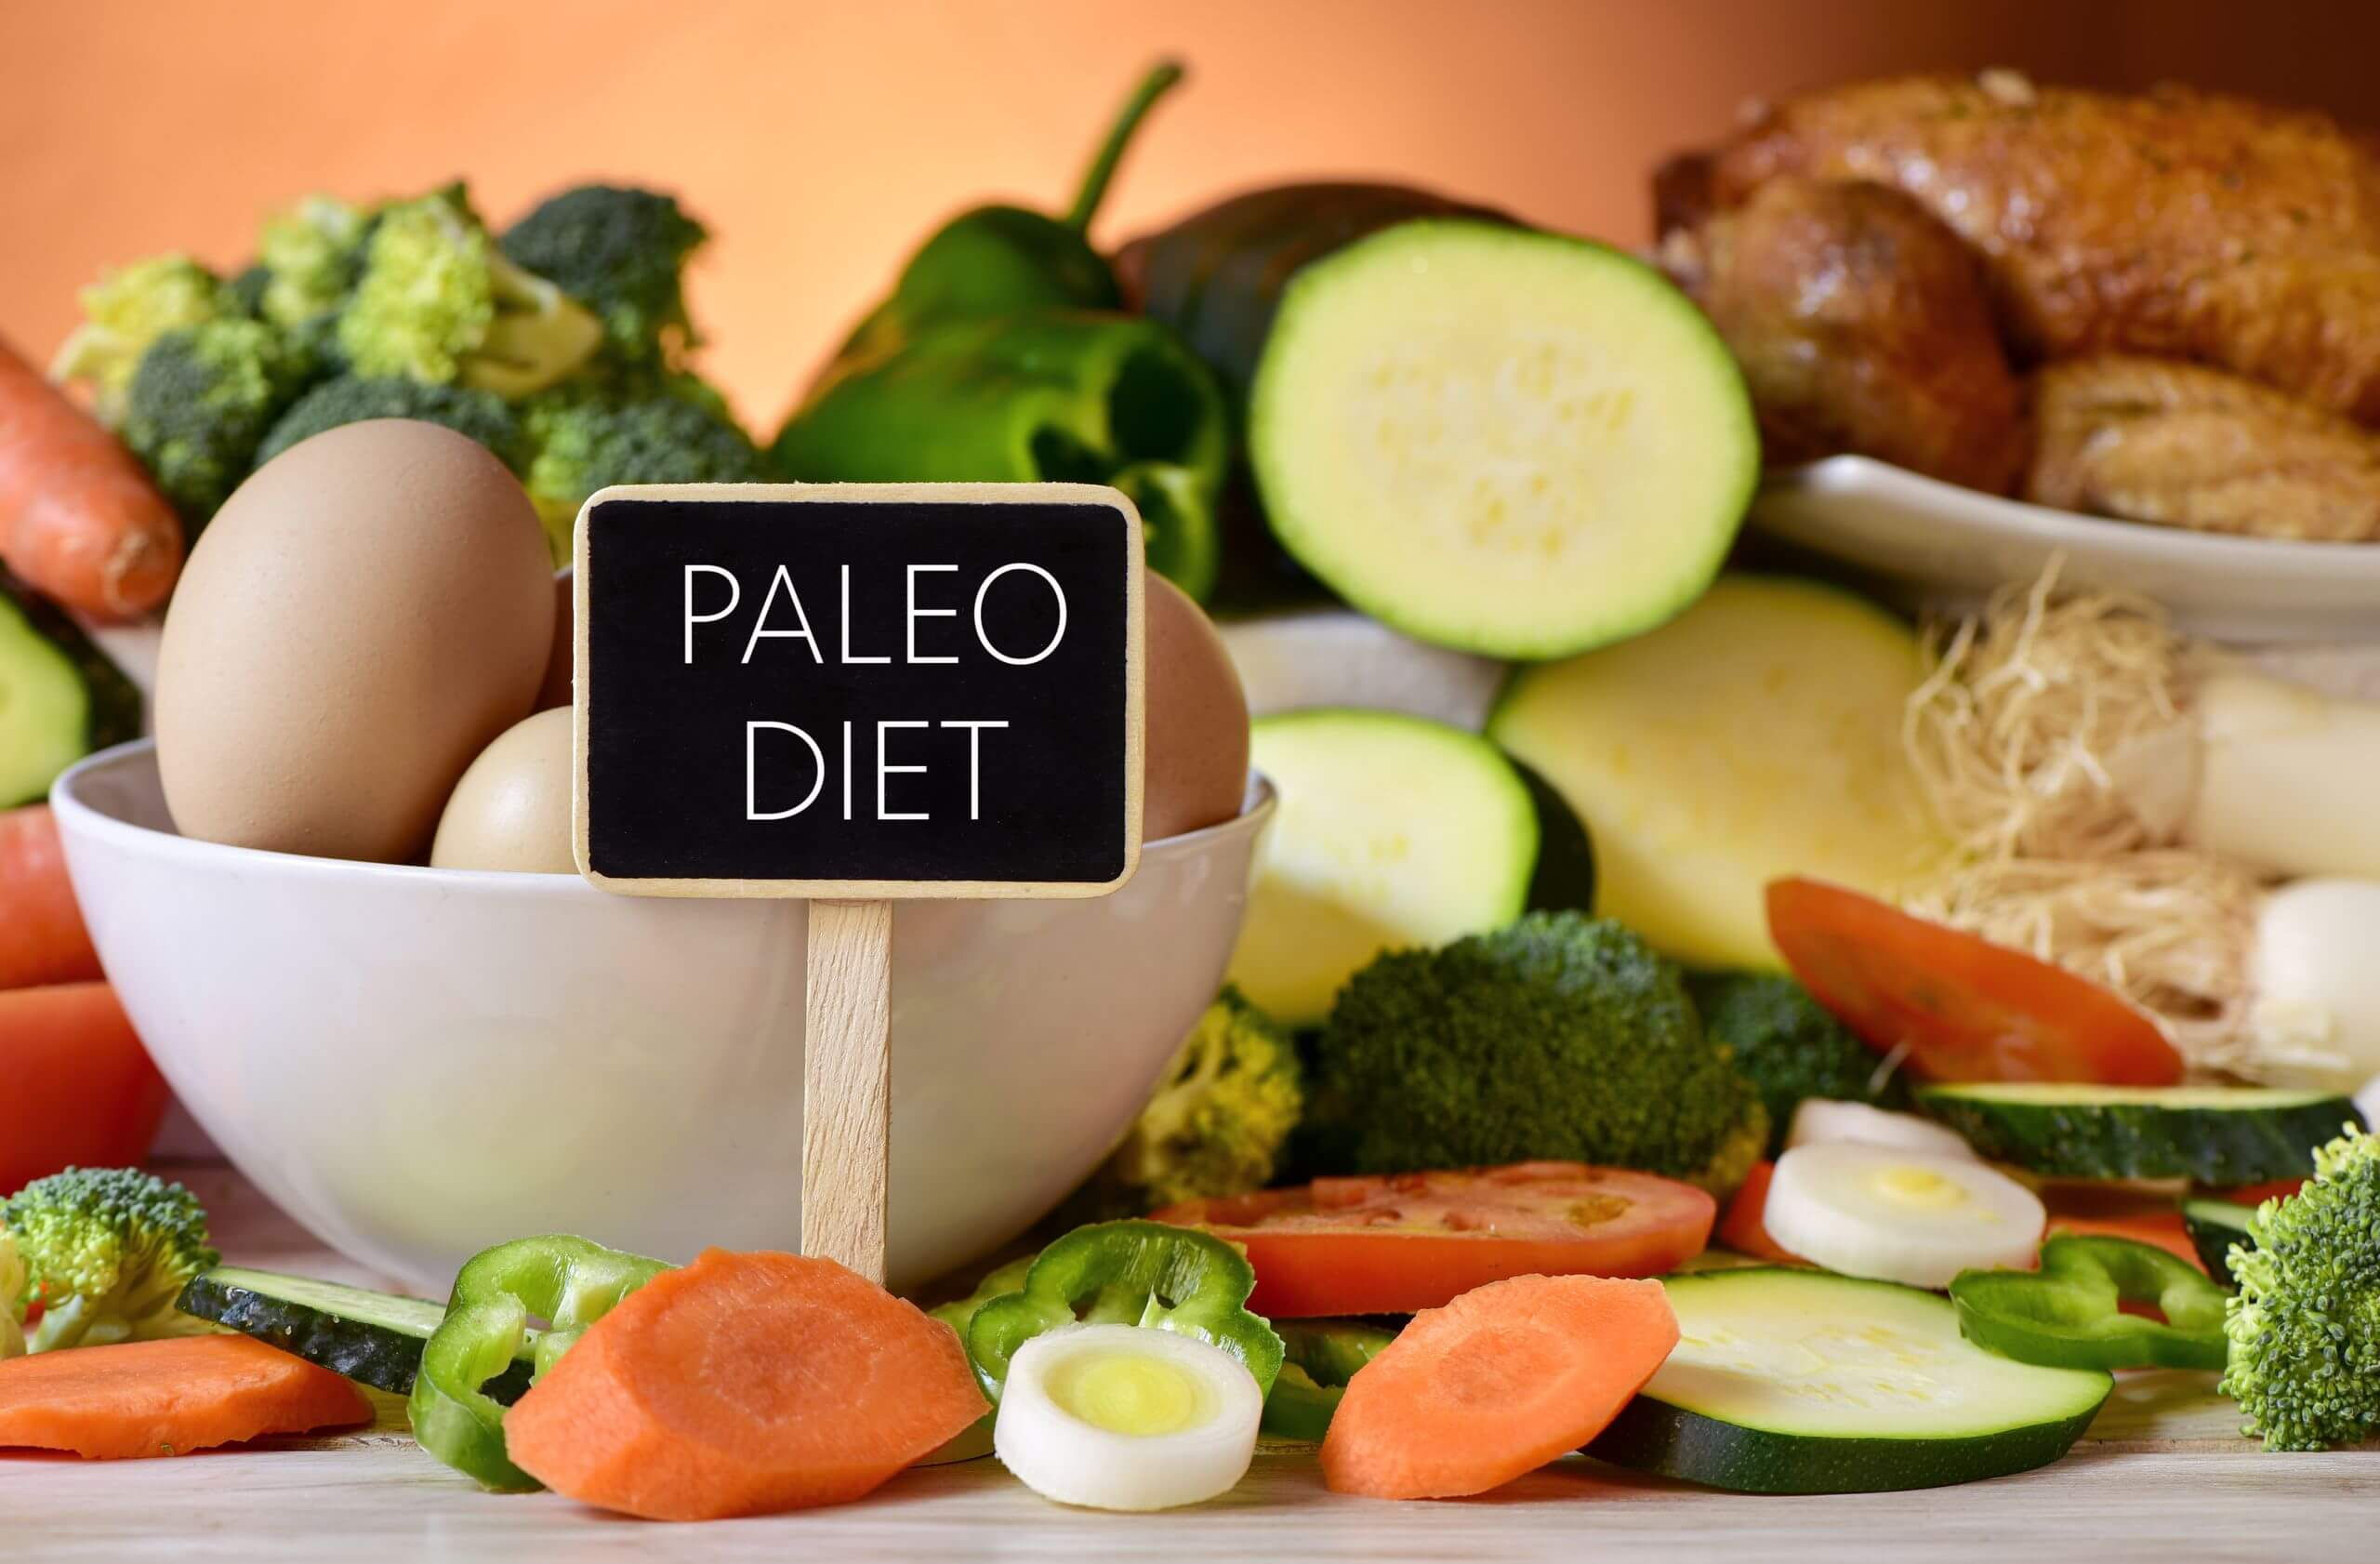 Paleo diet sign on a table full of various raw vegetables, a bowl of chicken eggs and chicken